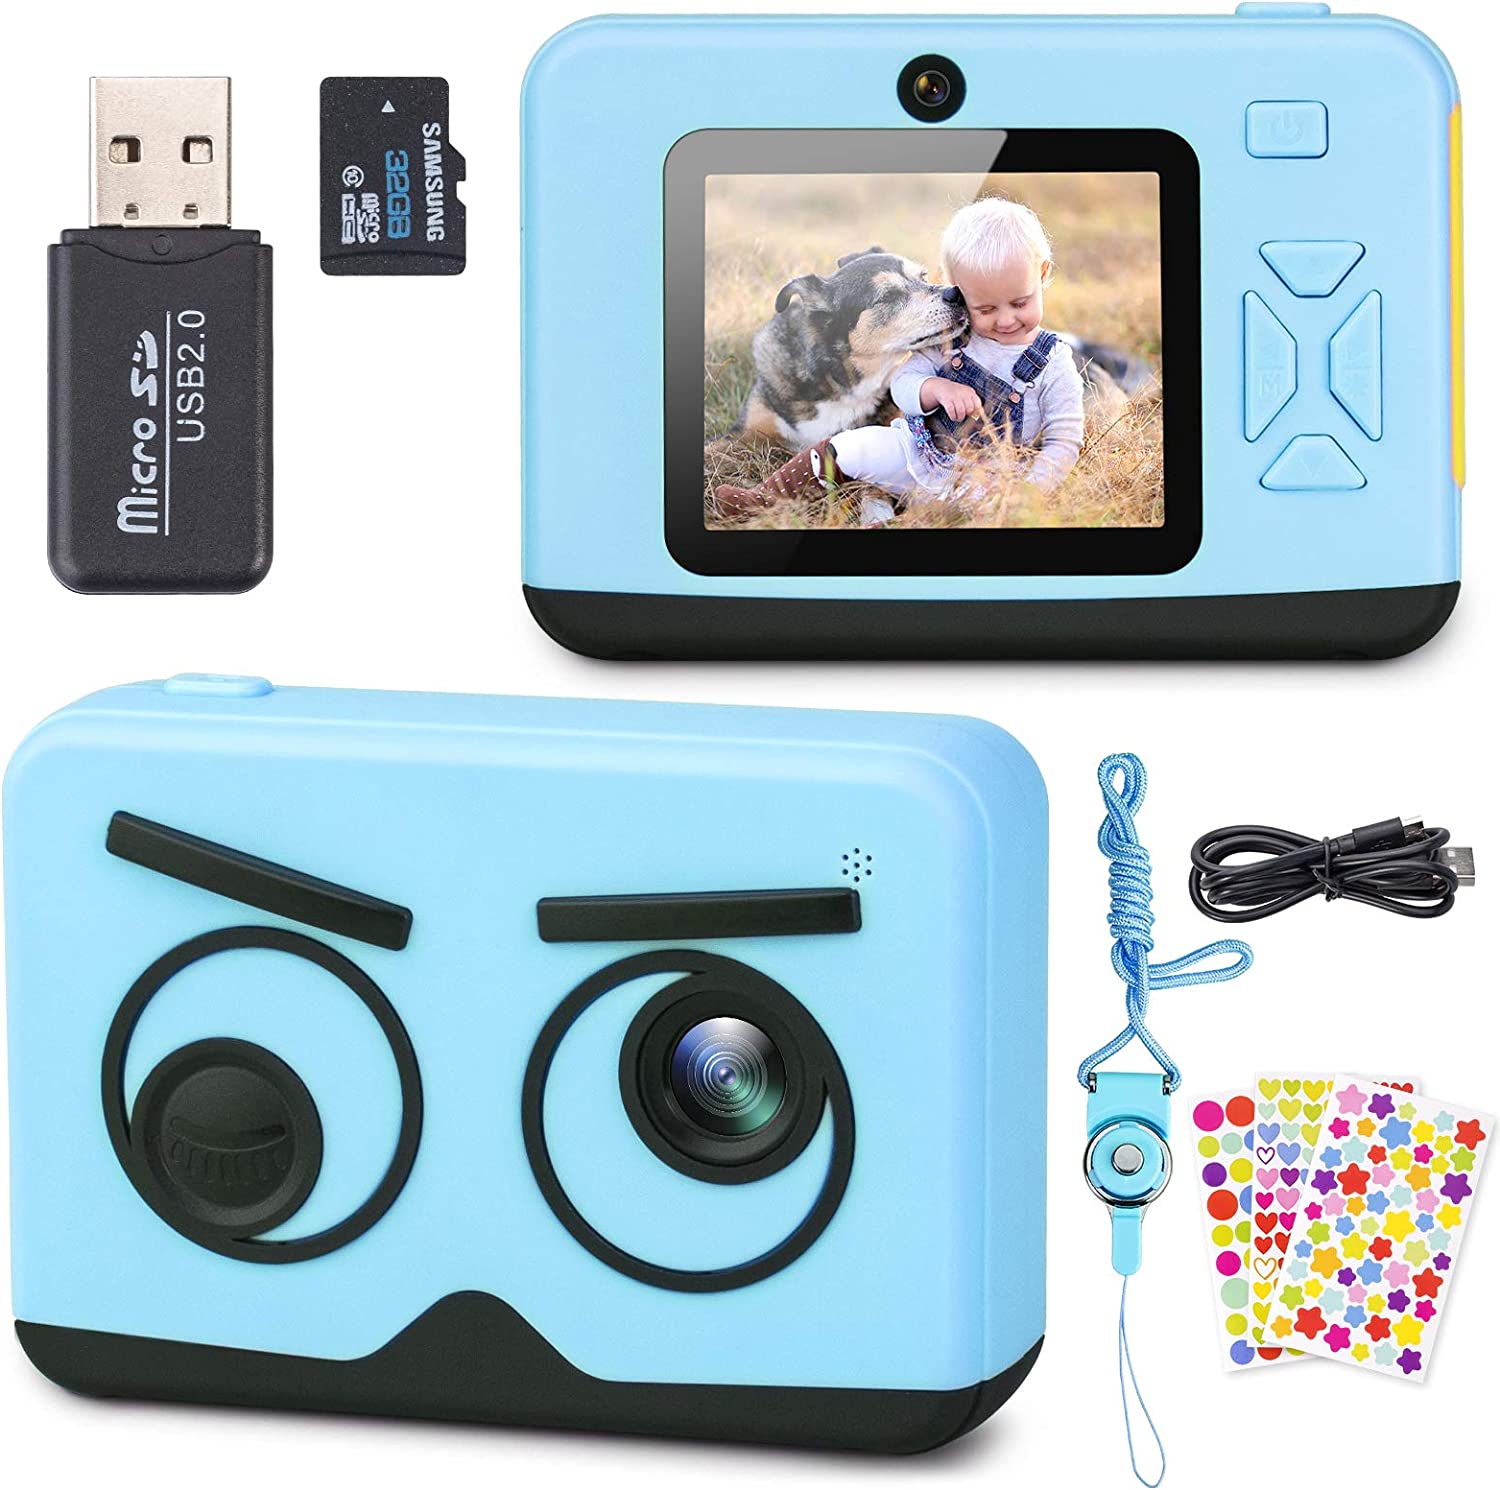 Upgrade Kids Camera, Belita Amy 2.4 Inch 1080P HD Dual Lens Digital Video Camcorder, Birthday Christmas Children Electronic Camera for Age 3-12 Years Old Girls Boys Toddlers with 32G SD Card(Blue)